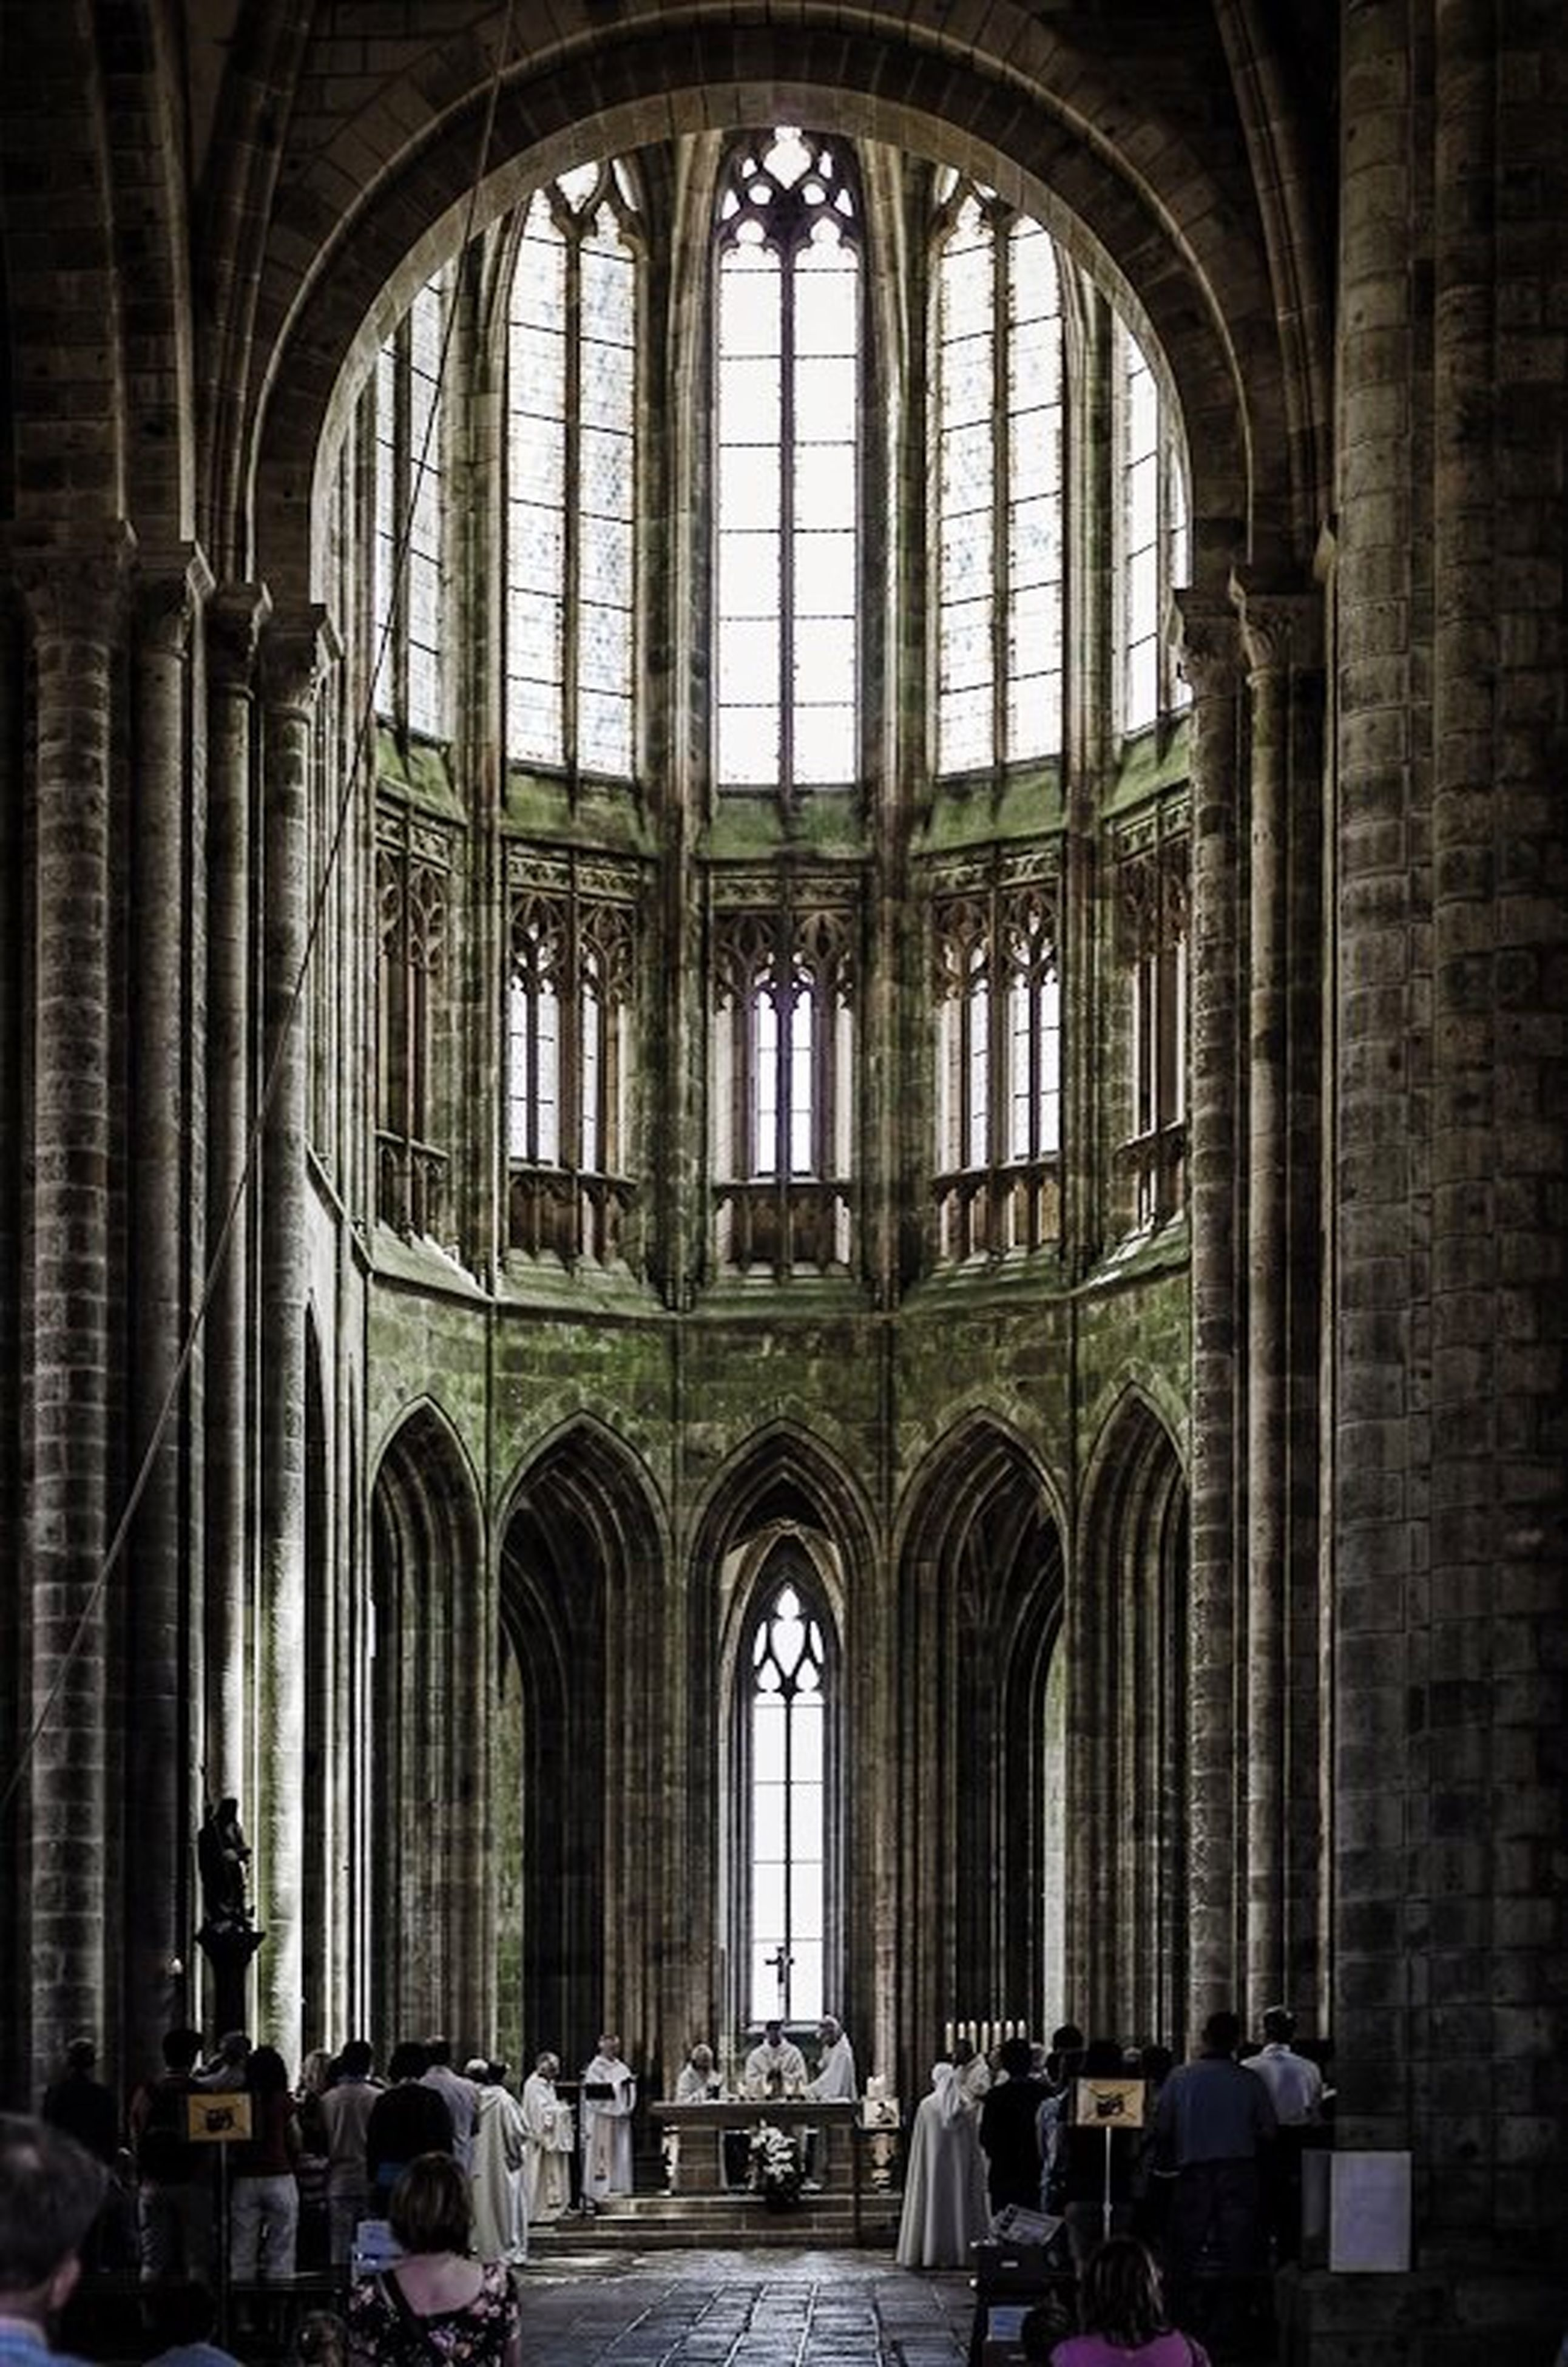 arch, indoors, architecture, built structure, church, place of worship, window, religion, spirituality, interior, men, archway, entrance, old, history, building exterior, day